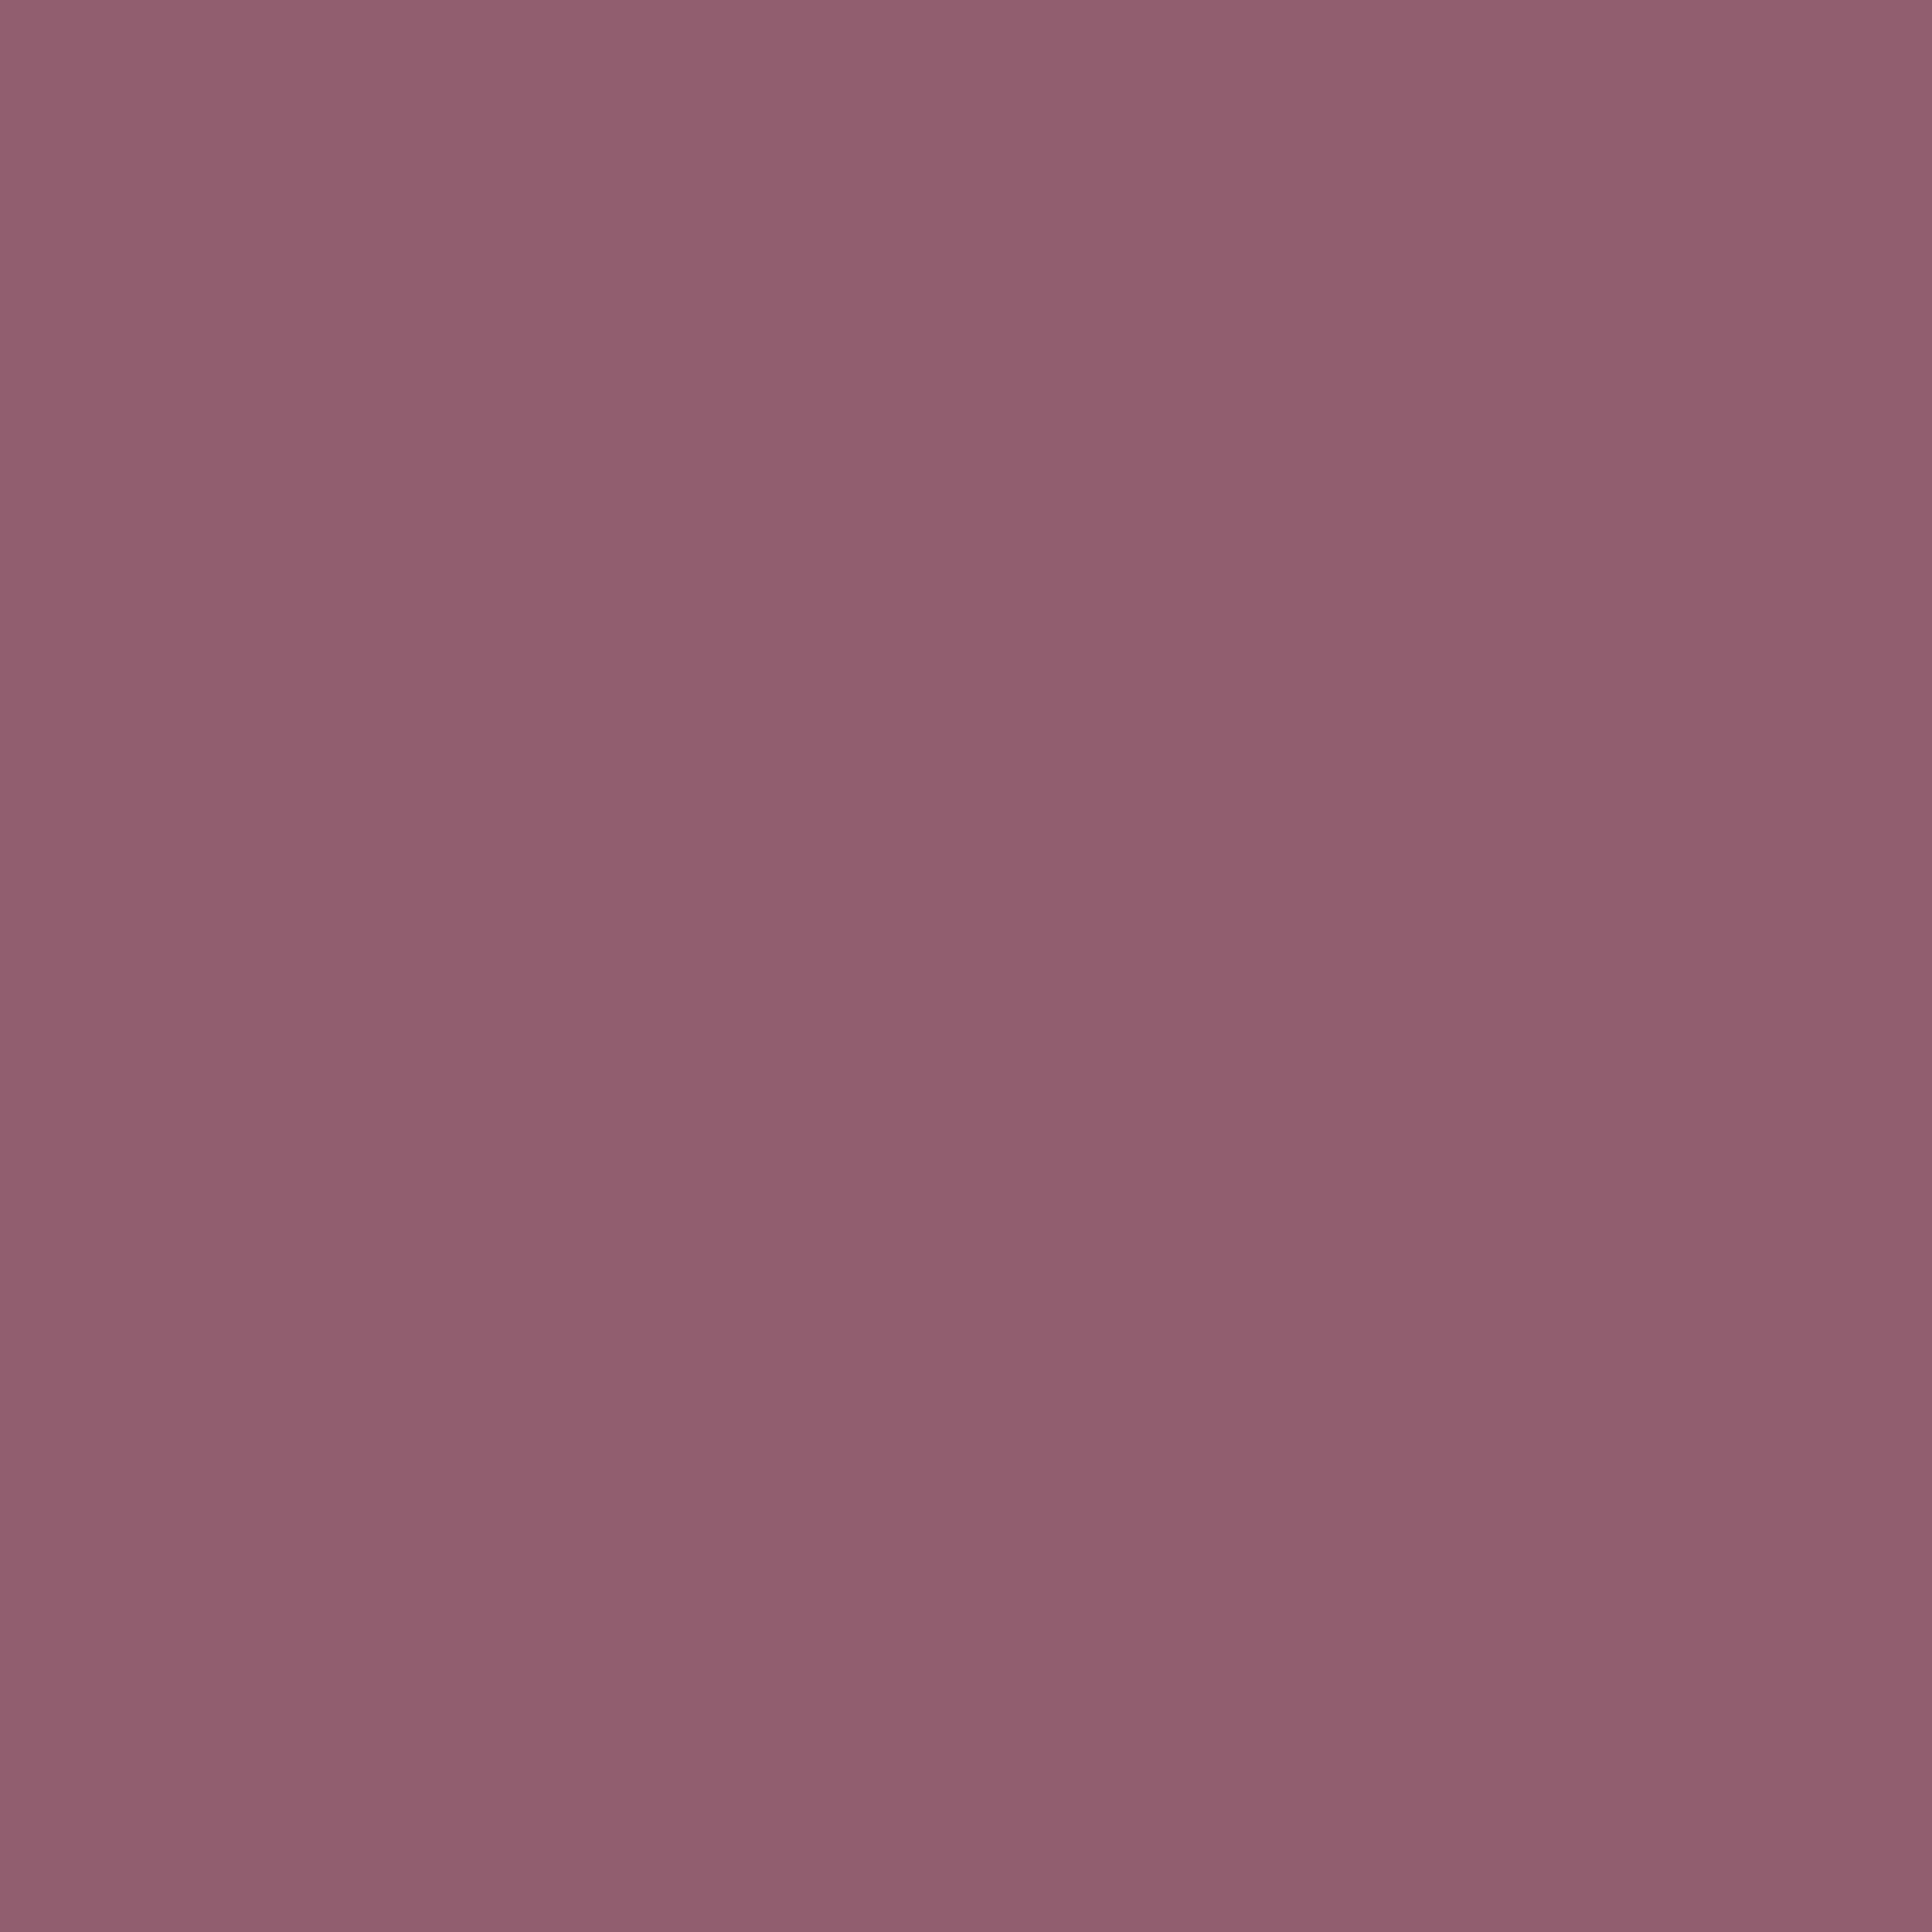 2048x2048 Raspberry Glace Solid Color Background